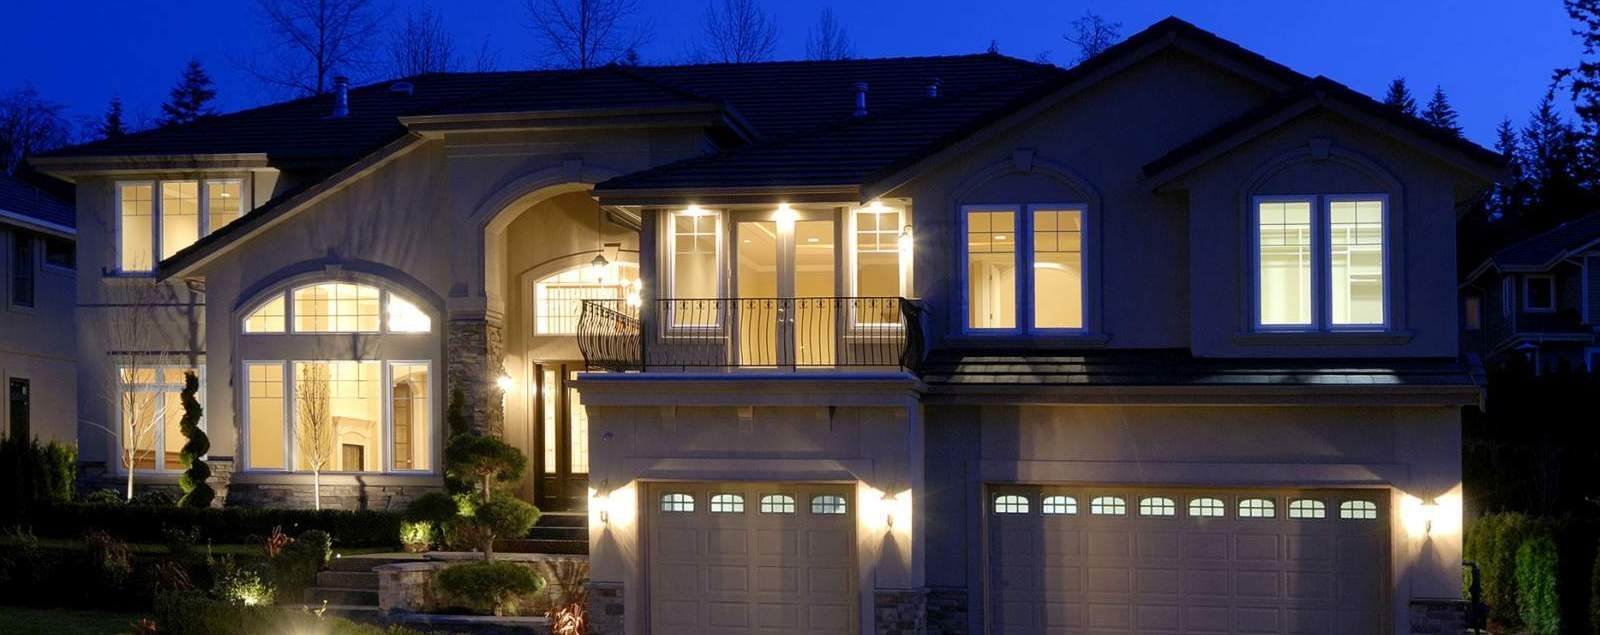 Outdoor Light Fixtures - Home Exterior Pendants, Flush & Porch Lighting pertaining to Outdoor House Lanterns (Image 16 of 20)